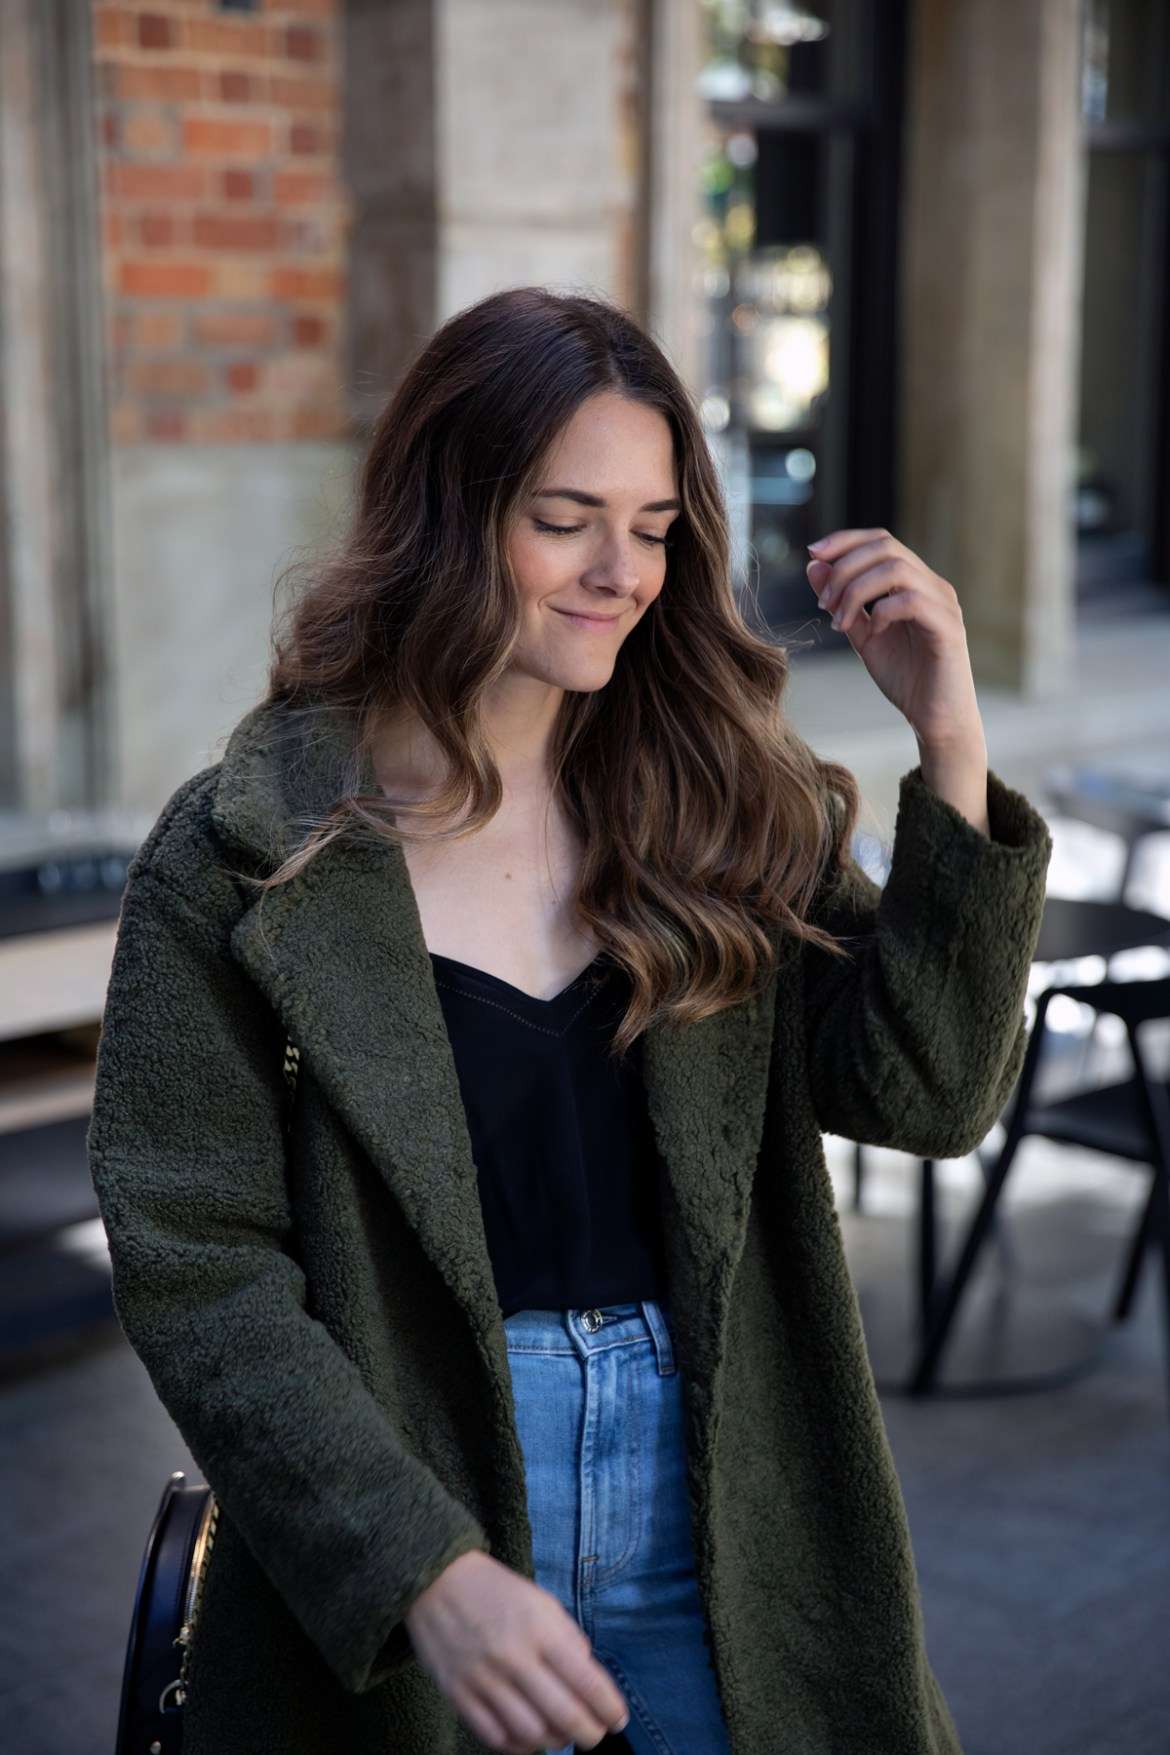 army green teddy coat winter outfit idea from Inspiring Wit fashion blogger Jenelle